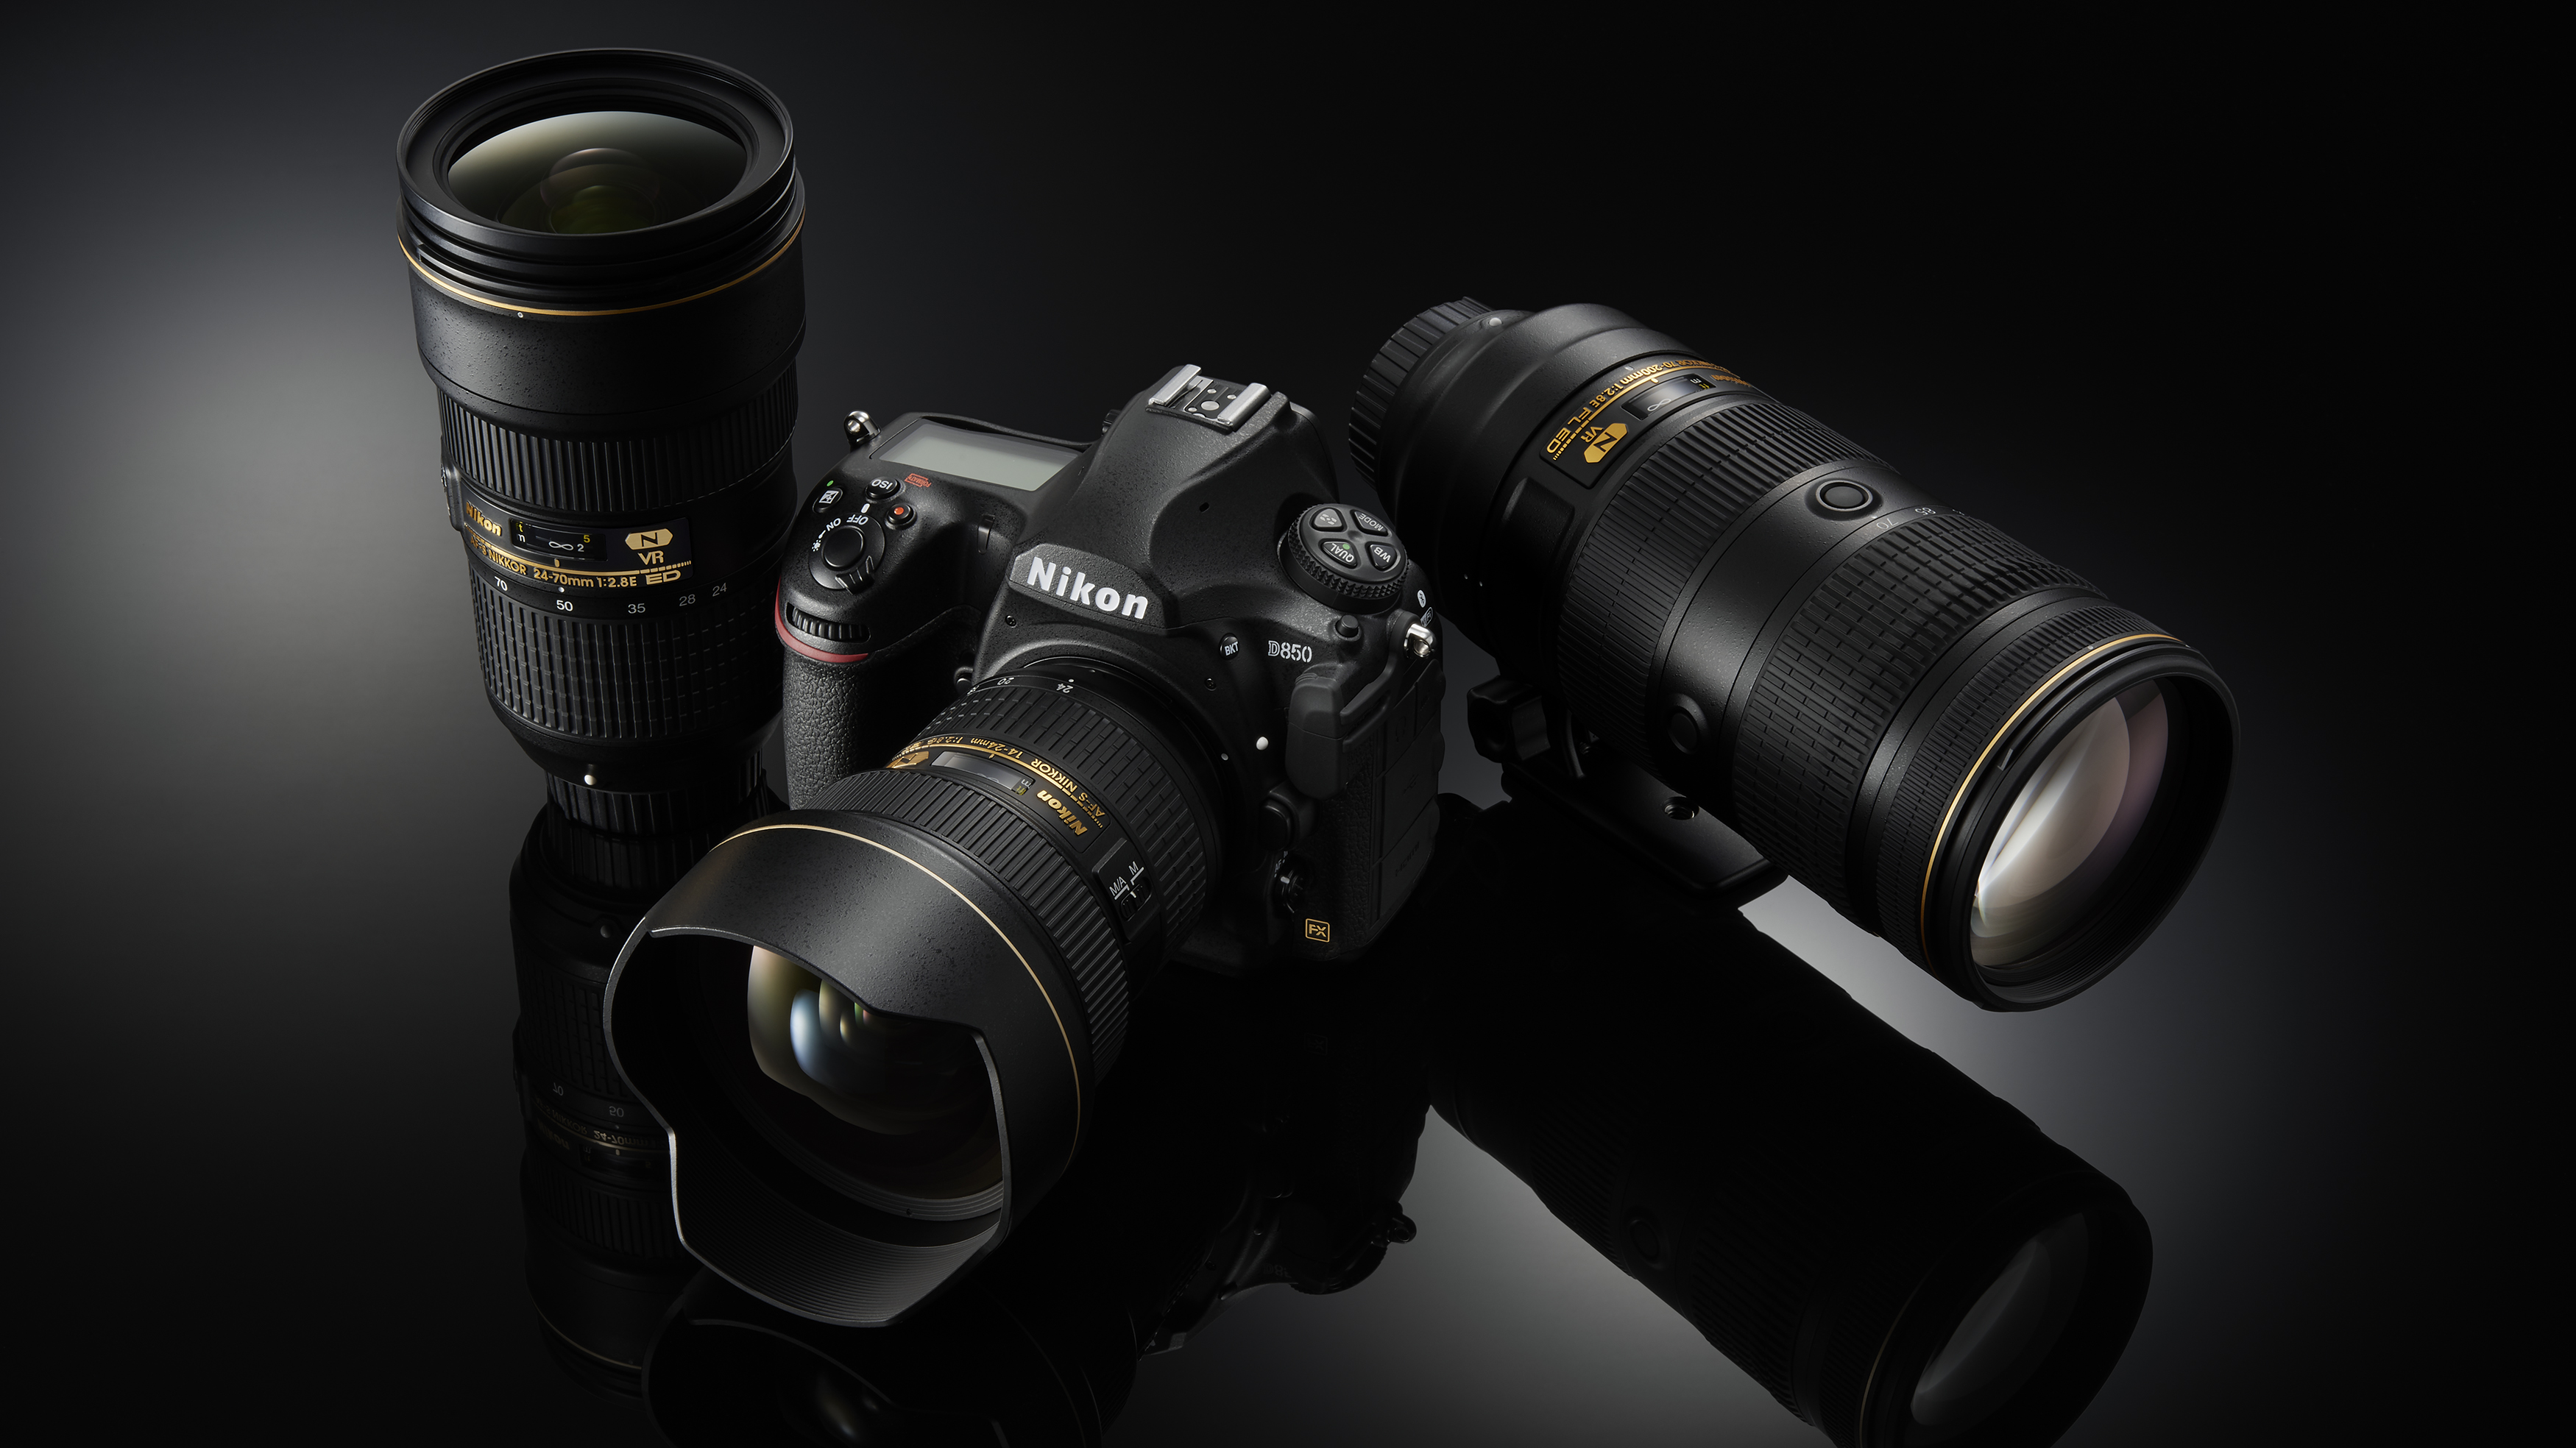 Best Nikon lenses 2018: 10 high-end optics for full-frame Nikon ...